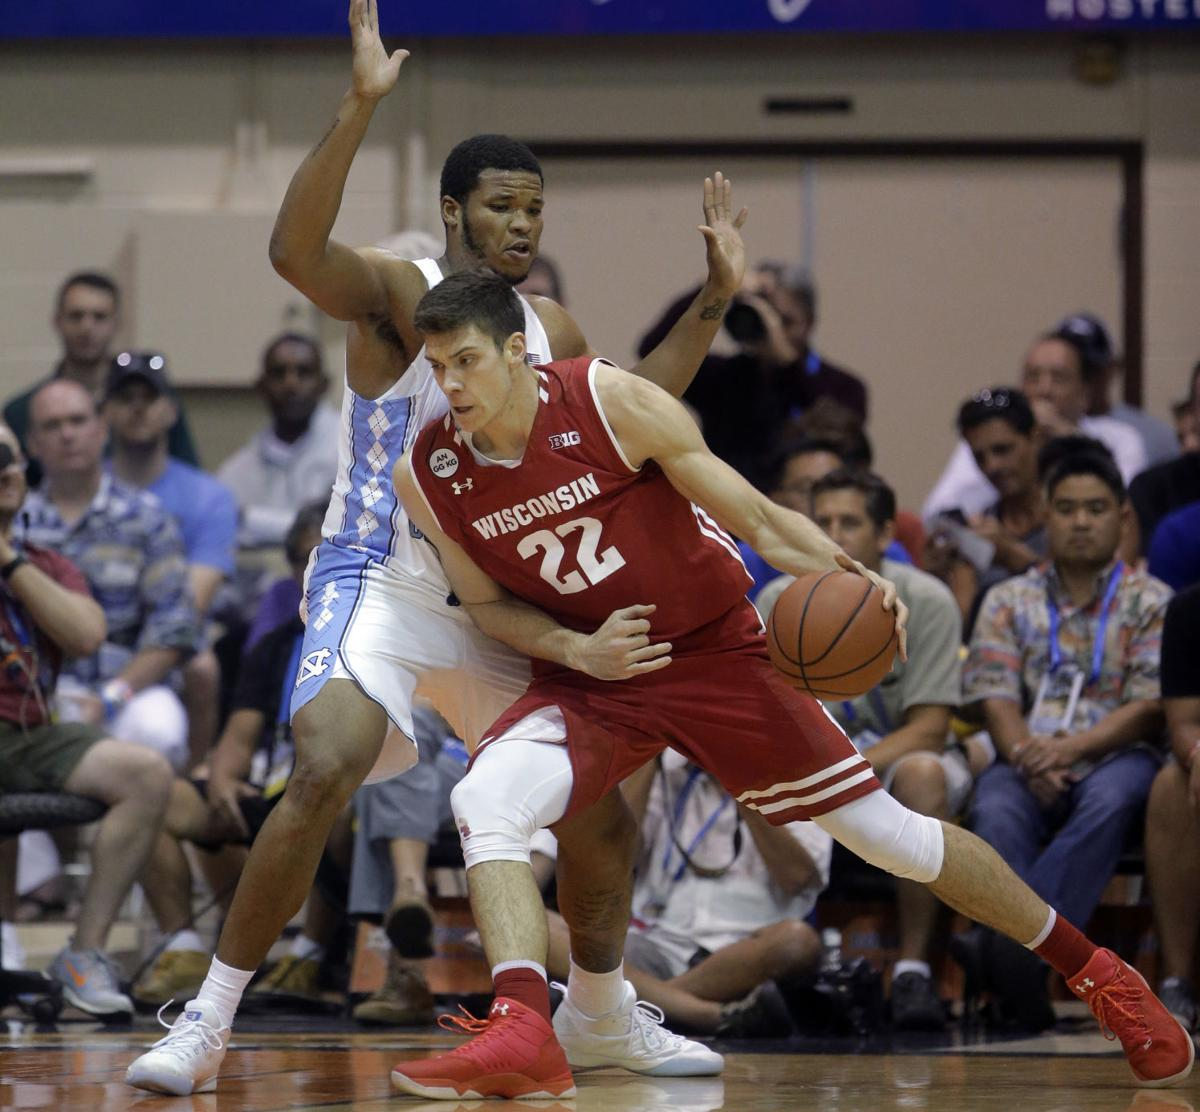 Photos: No. 4 North Carolina 71, No. 16 Wisconsin 56 at Maui Invitational | Wisconsin Badgers ...